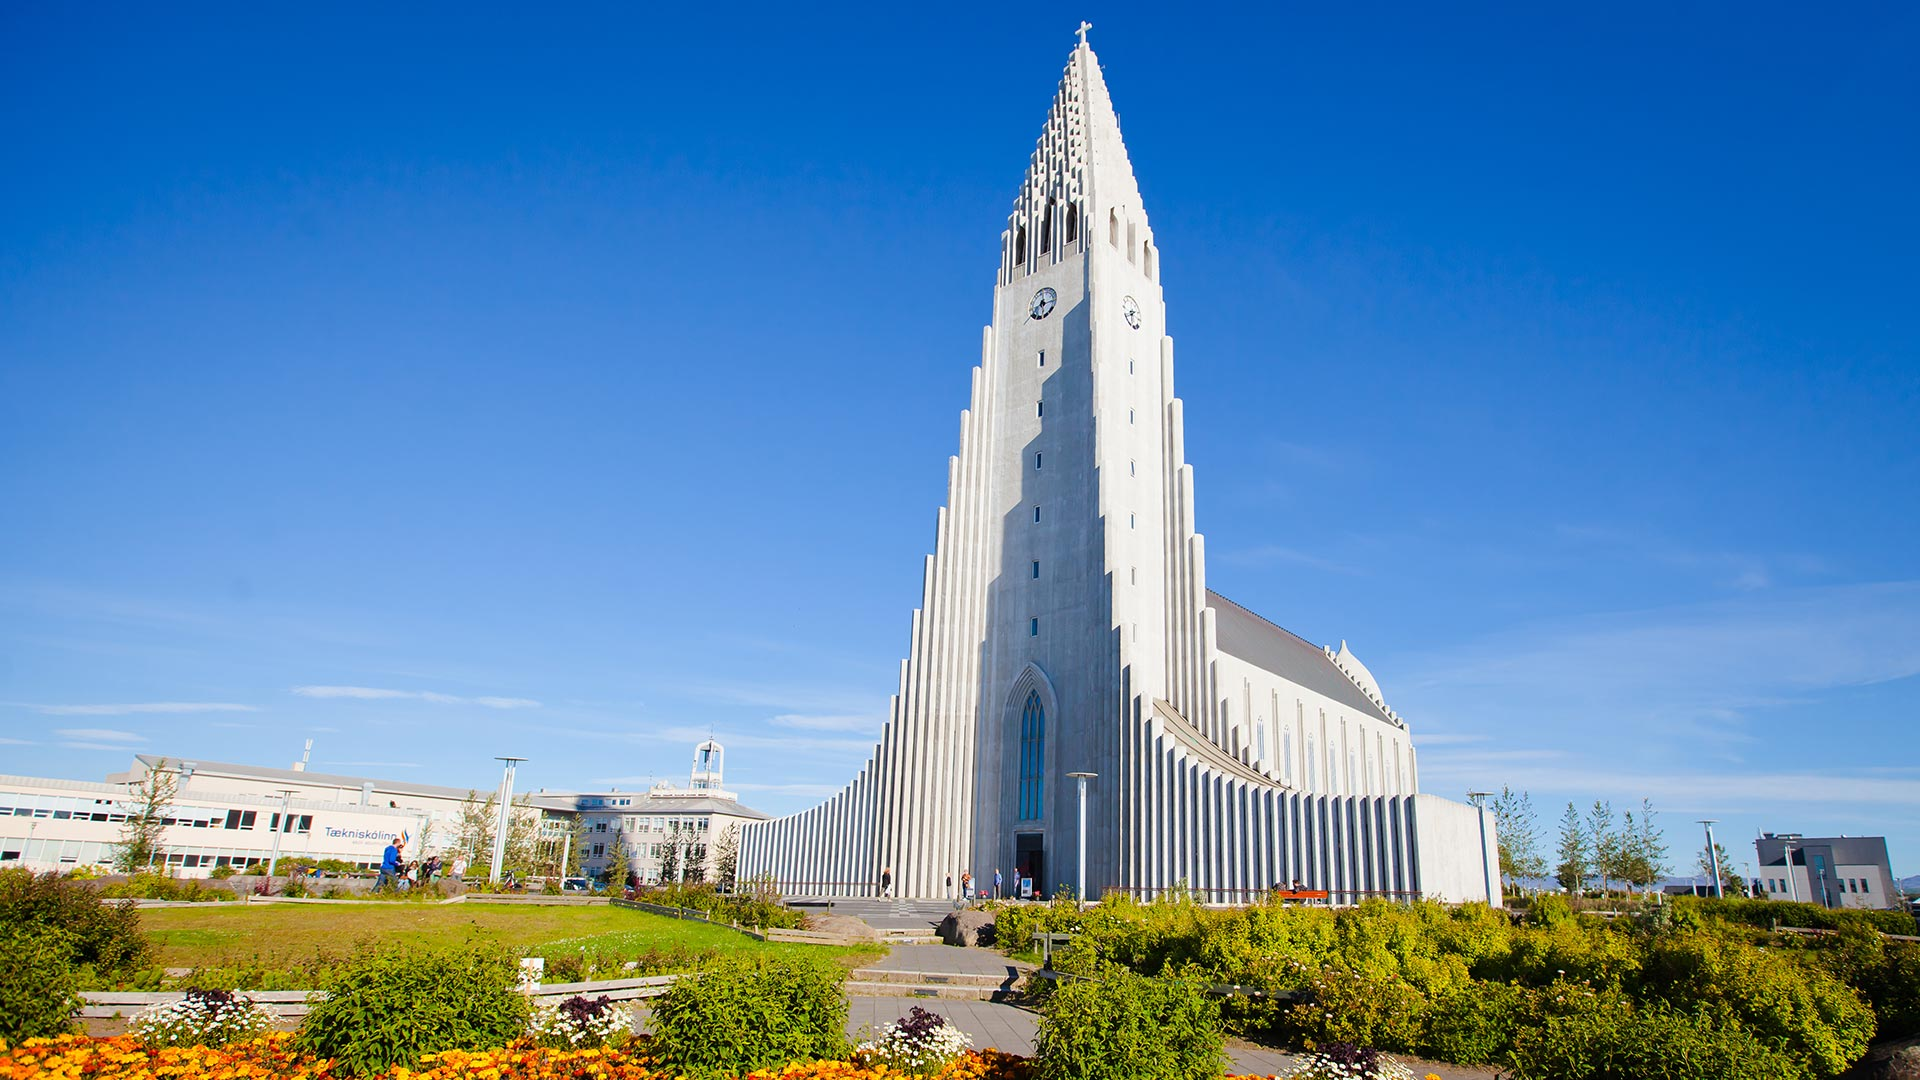 Contact Capital One >> Hallgrímskirkja church : Reykjavik : Travel Guide : Nordic Visitor